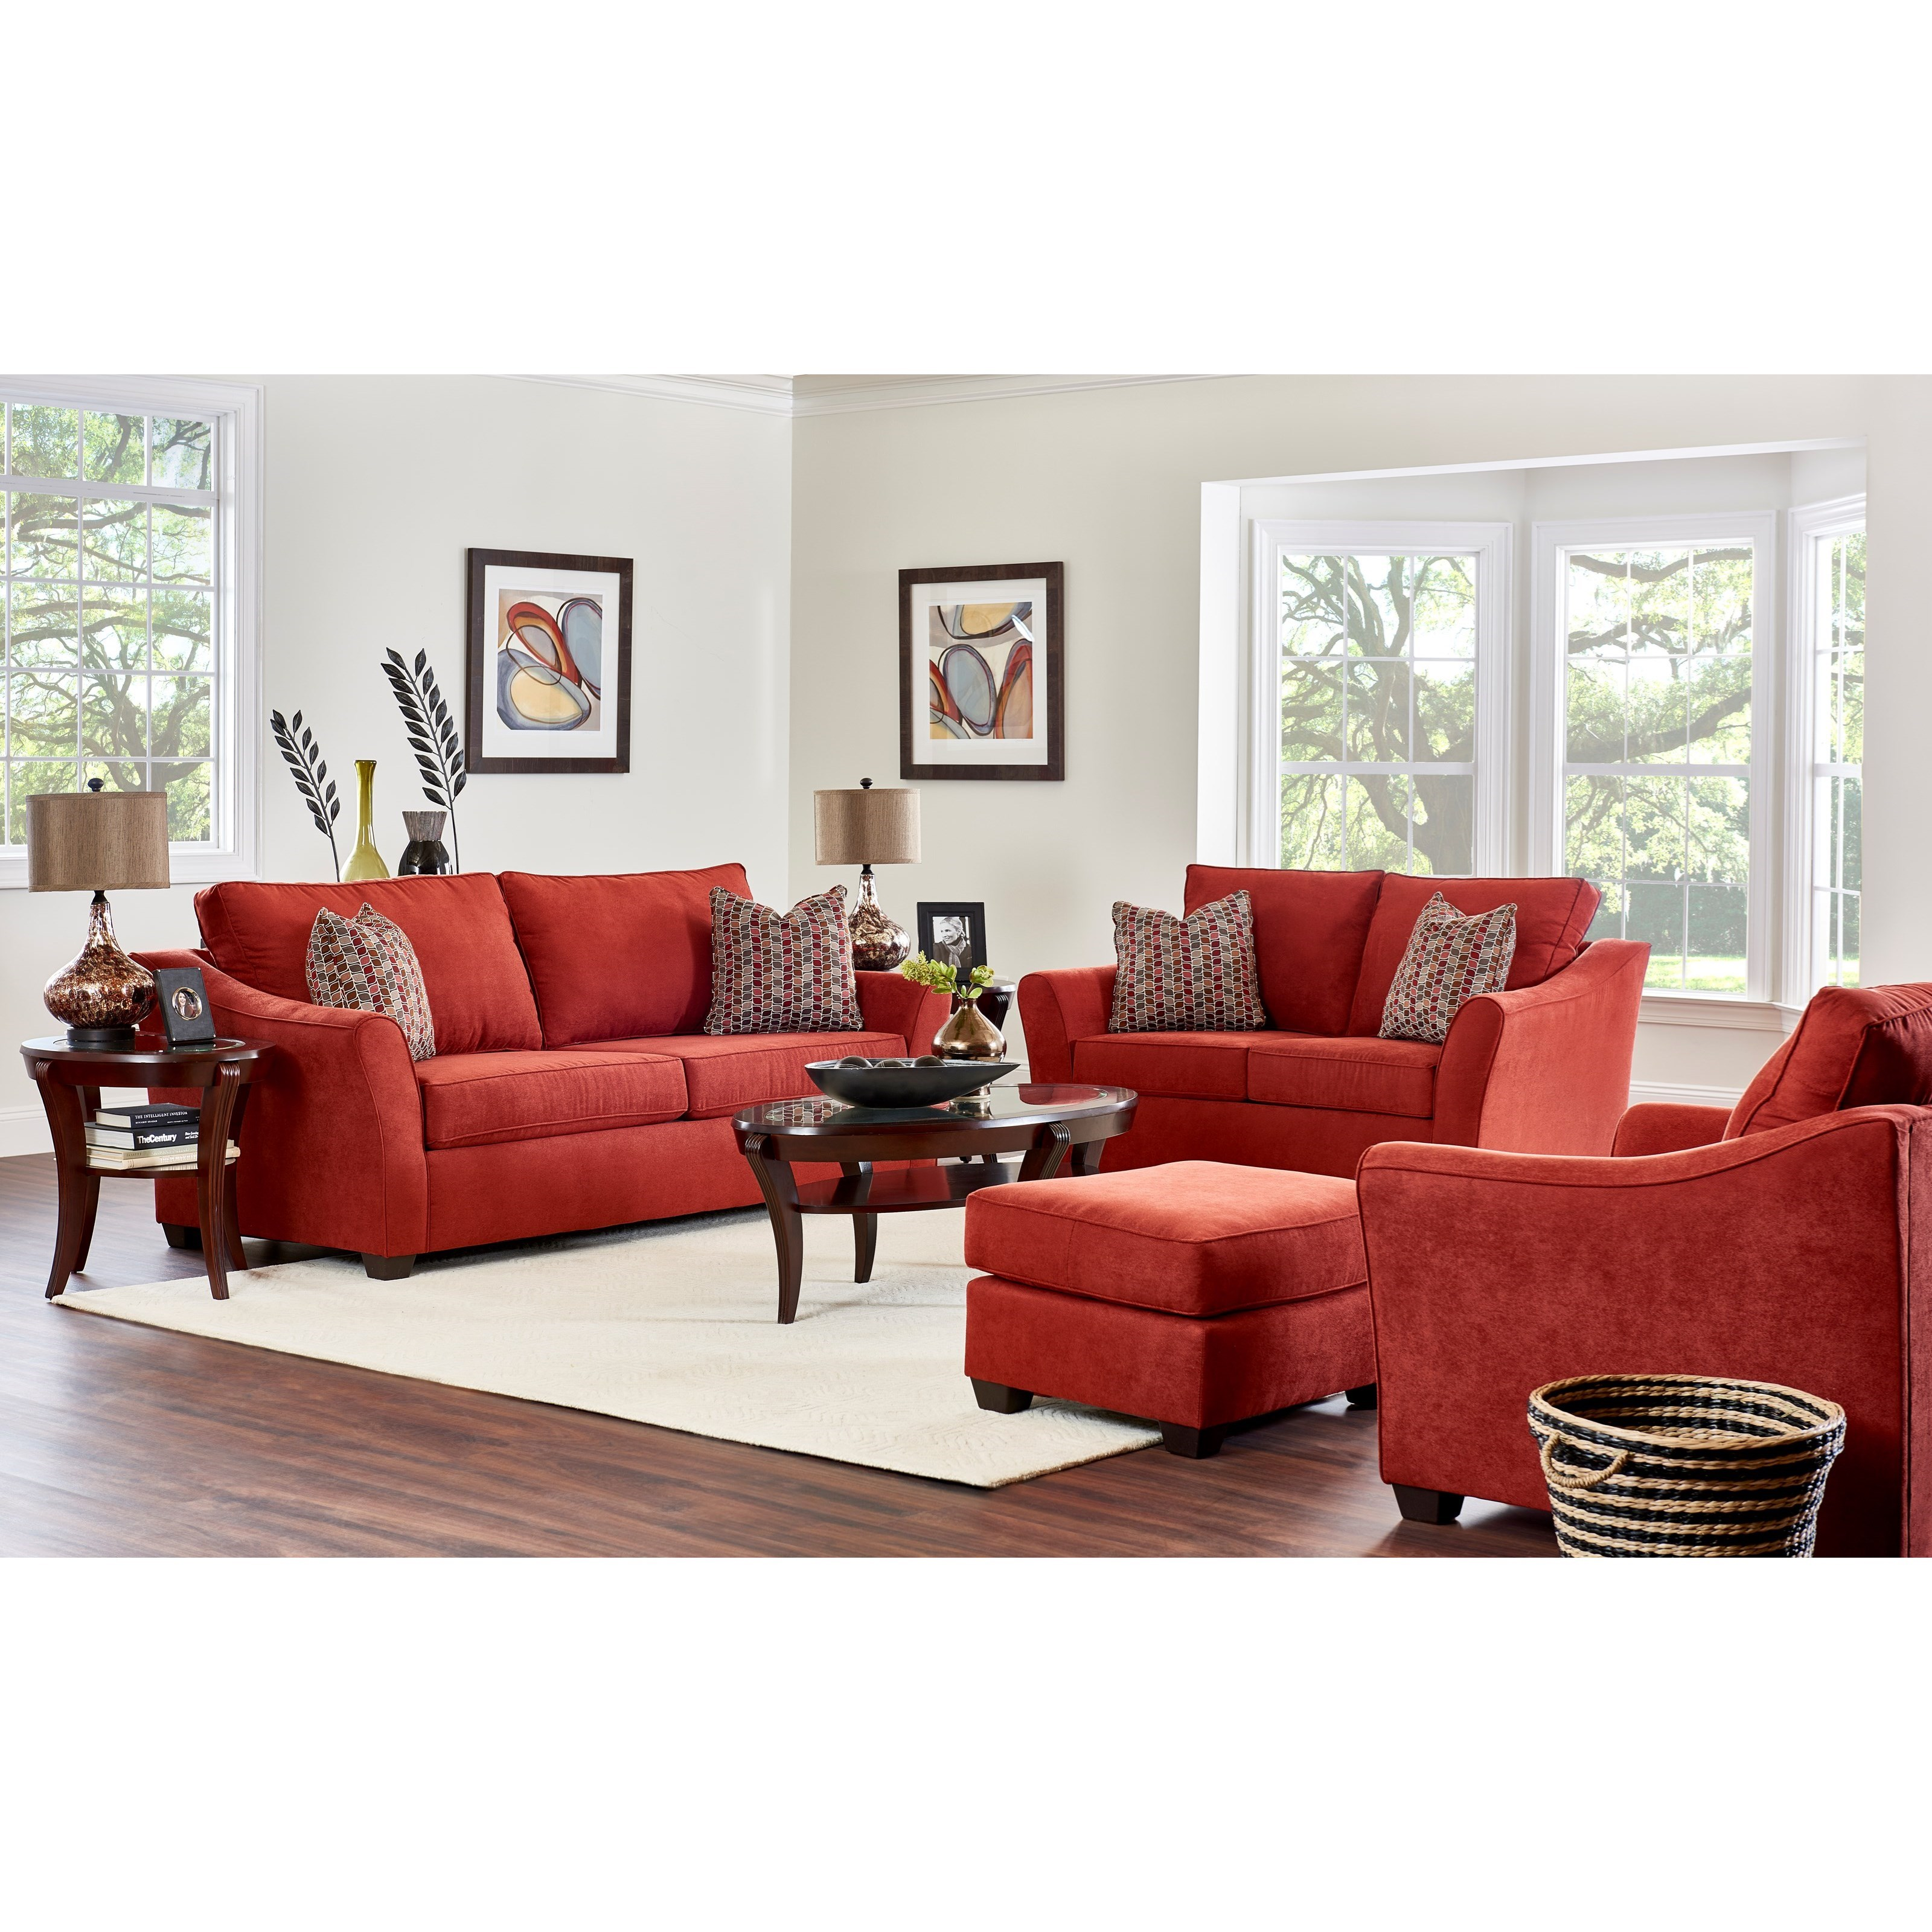 Klaussner Linville Living Room Group Value City Furniture Stationary Living Room Groups